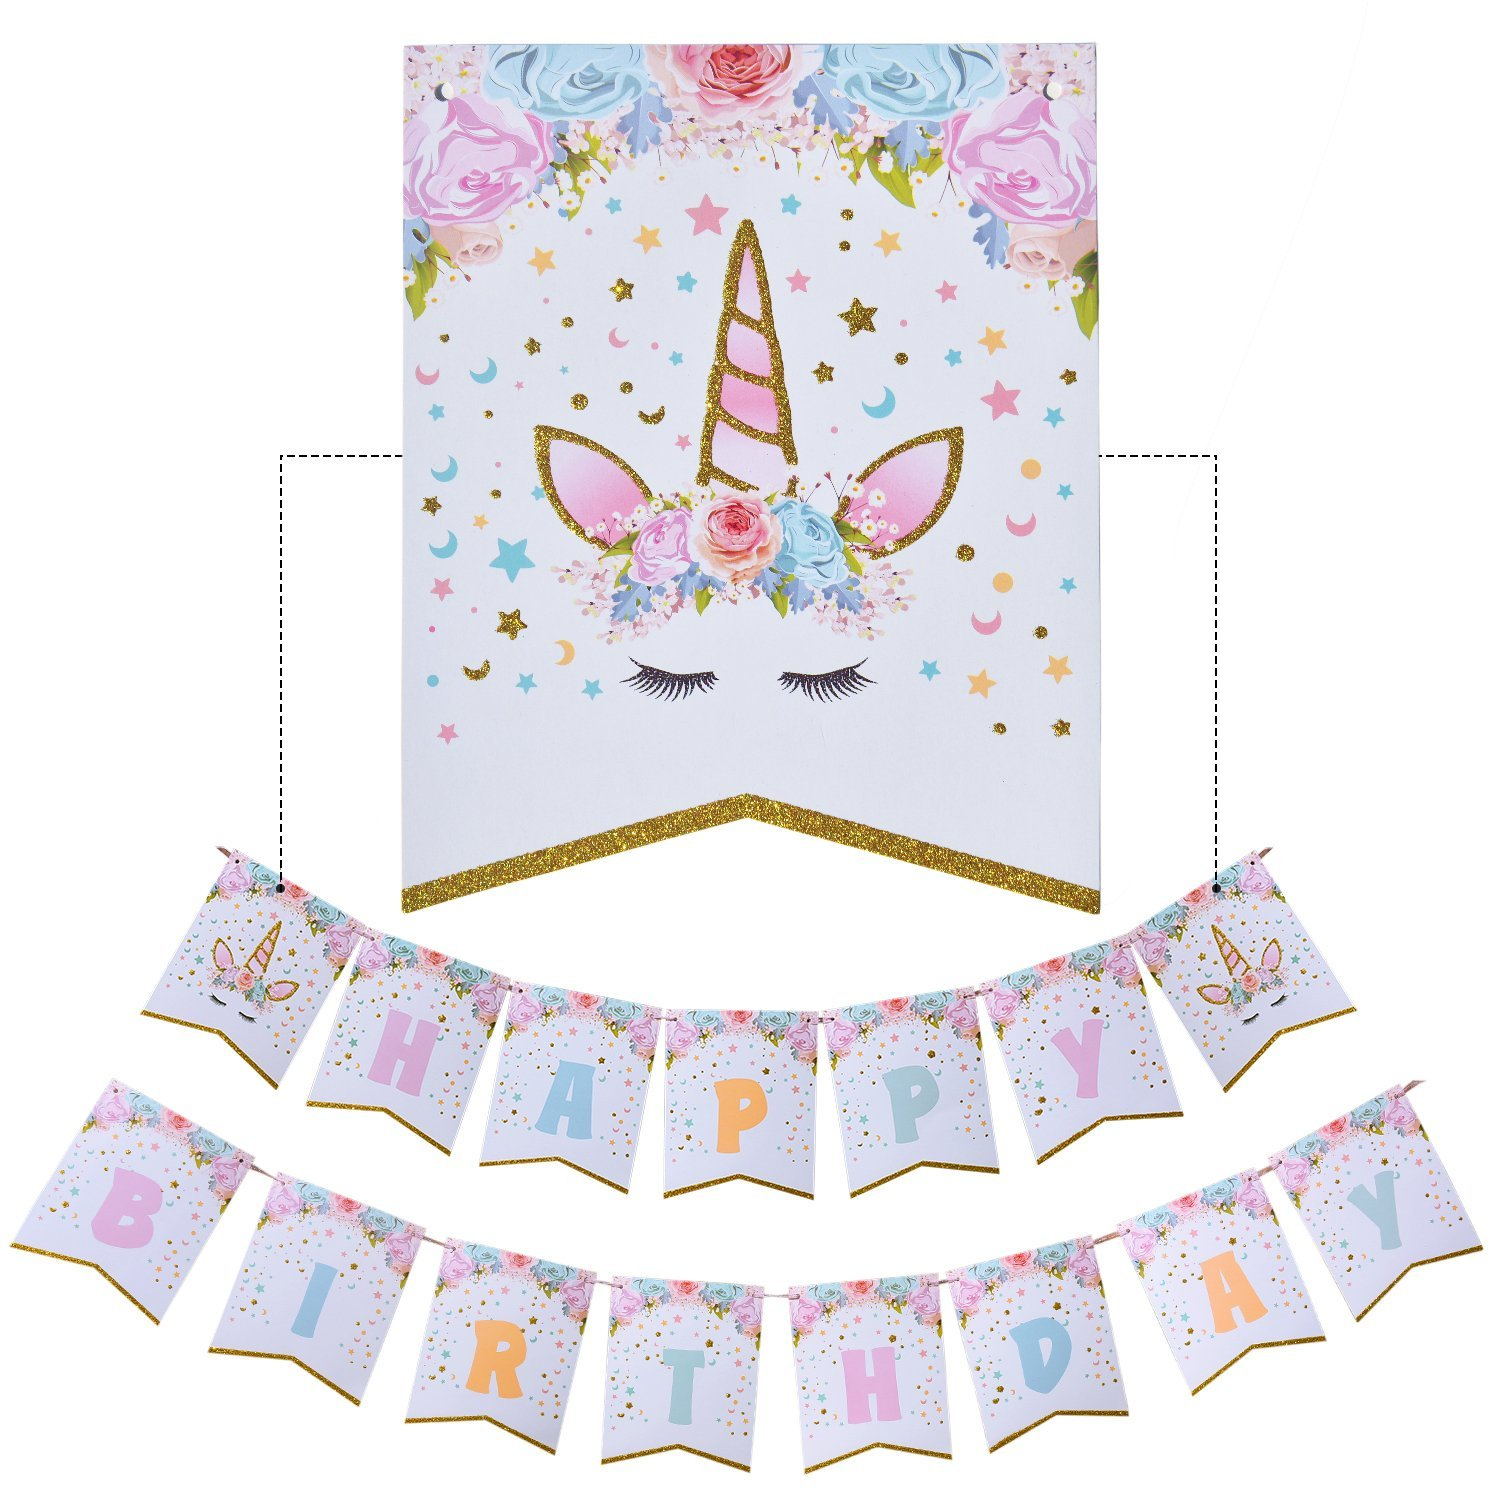 Happy Birthday Bunting Banner Rainbow Unicorn Themed Party Favors Decorations For Cute Fantasy Fairy Girls Birthday Party Supplies